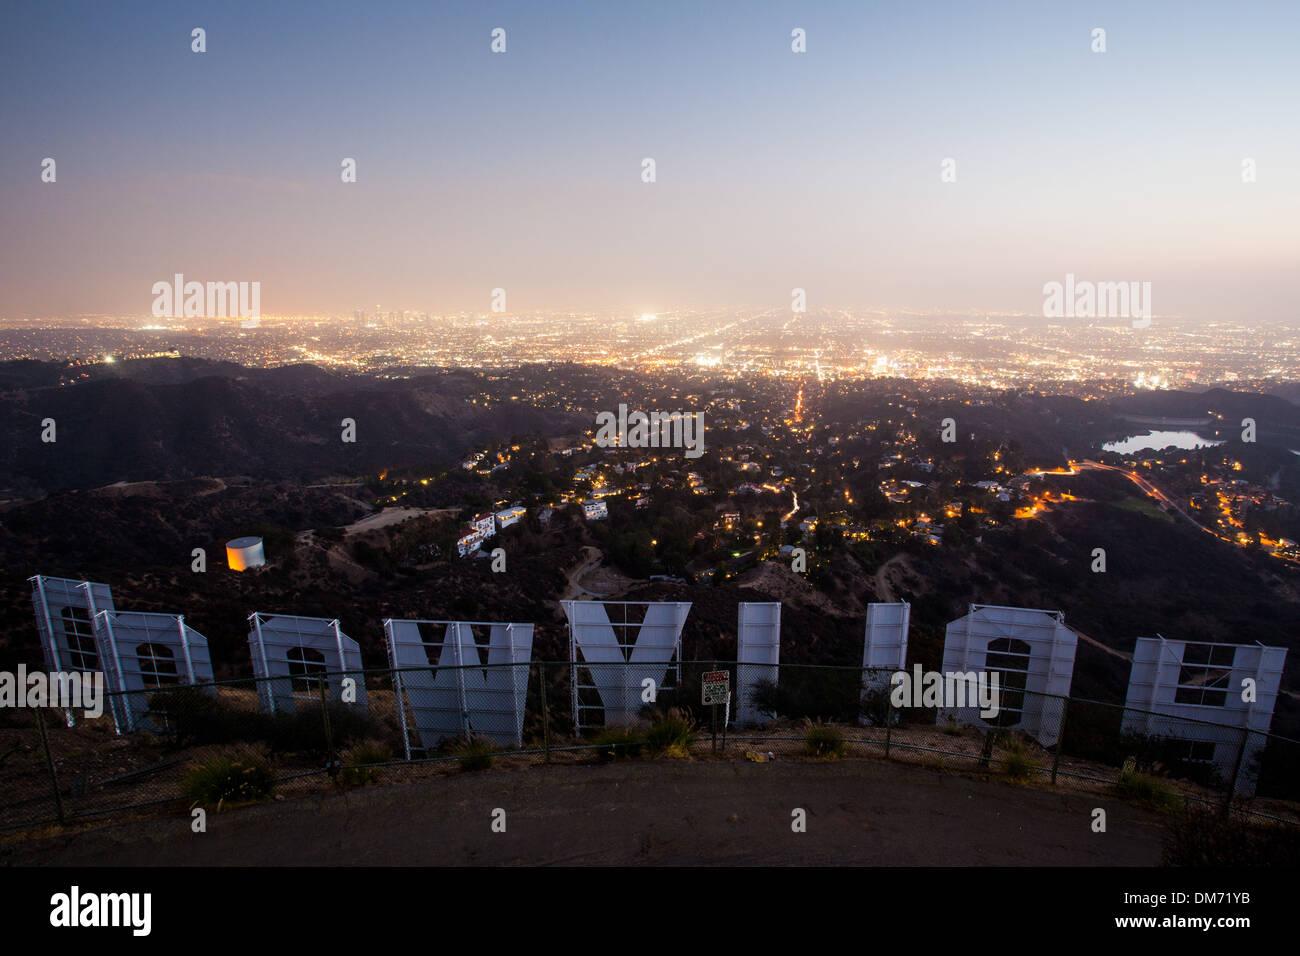 the view over the hollywood sign at night in los angeles. Black Bedroom Furniture Sets. Home Design Ideas